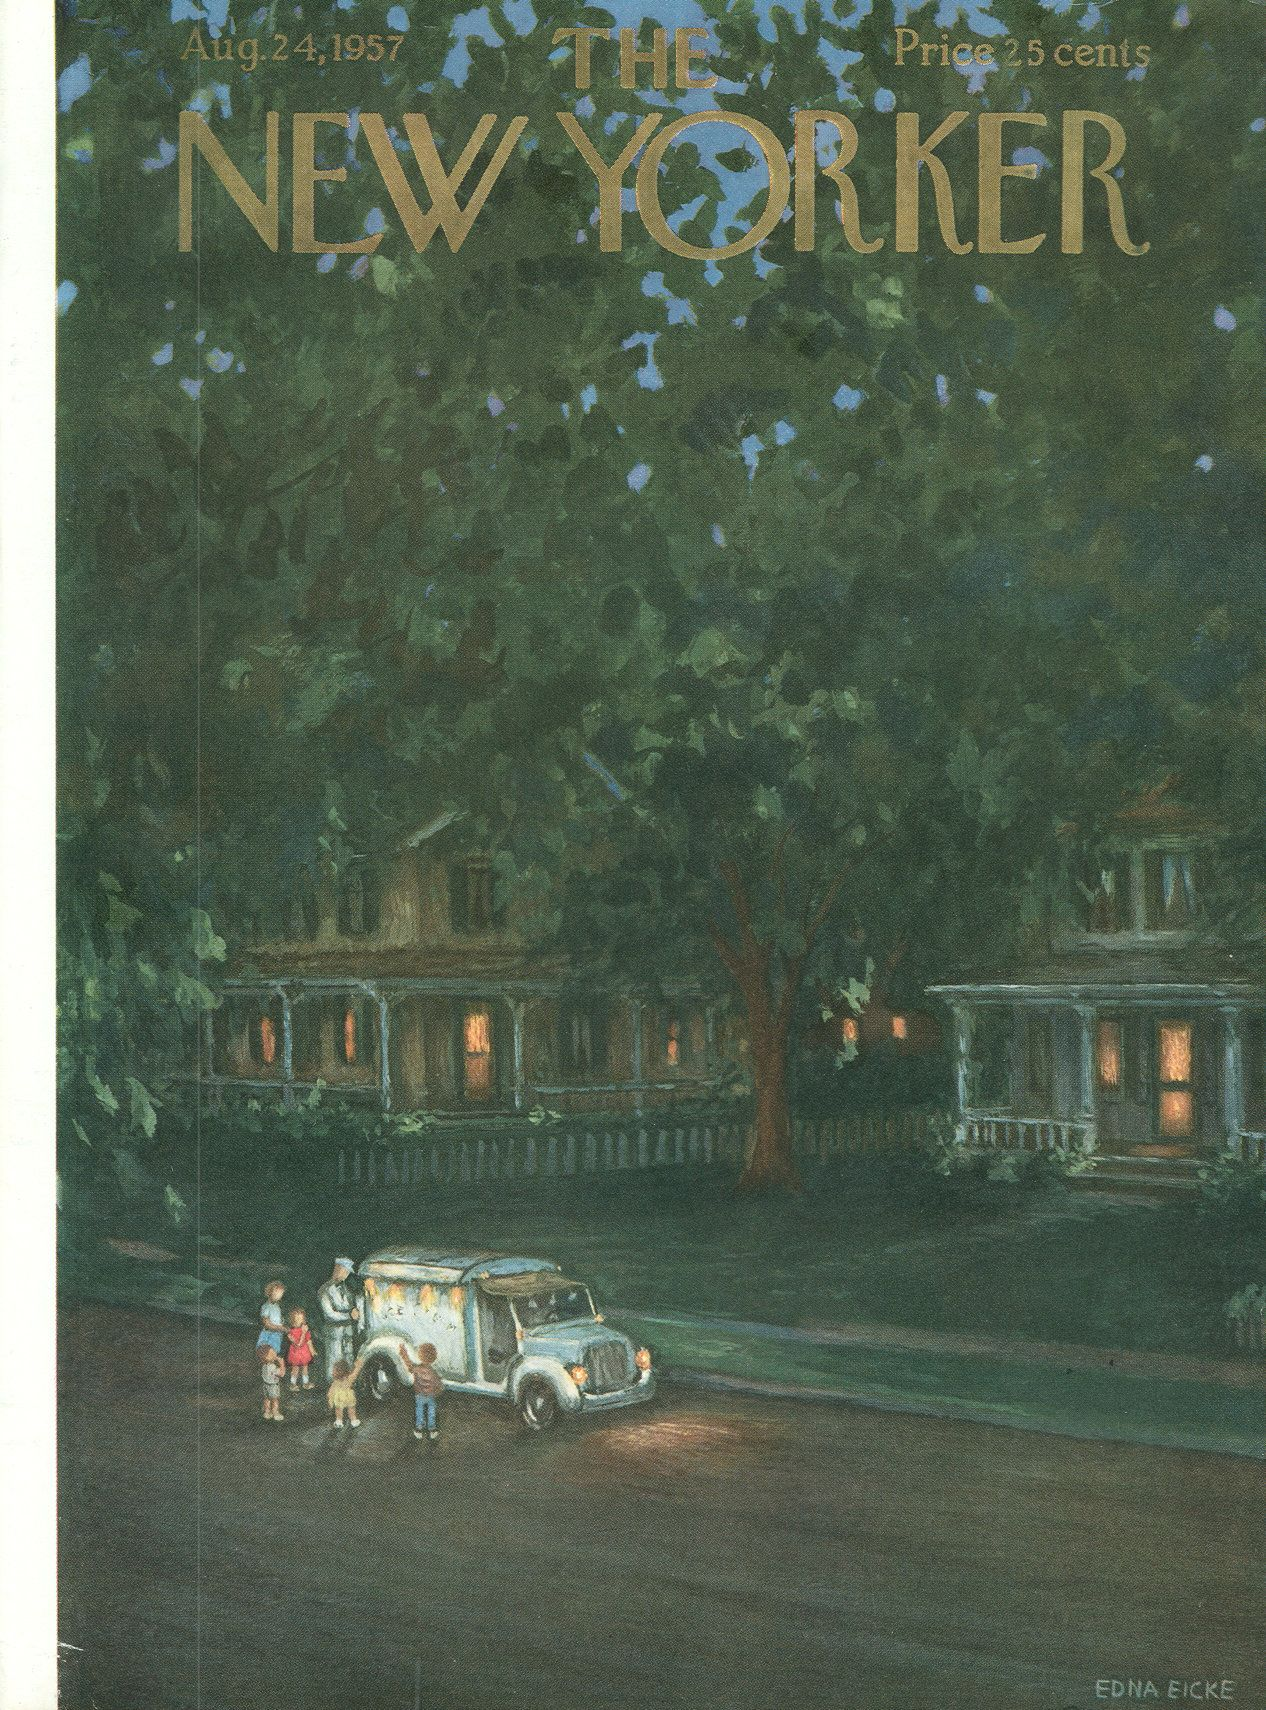 The New Yorker - Saturday, August 24, 1957 - Issue # 1697 - Vol. 33 - N° 27 - Cover by : Edna Eicke